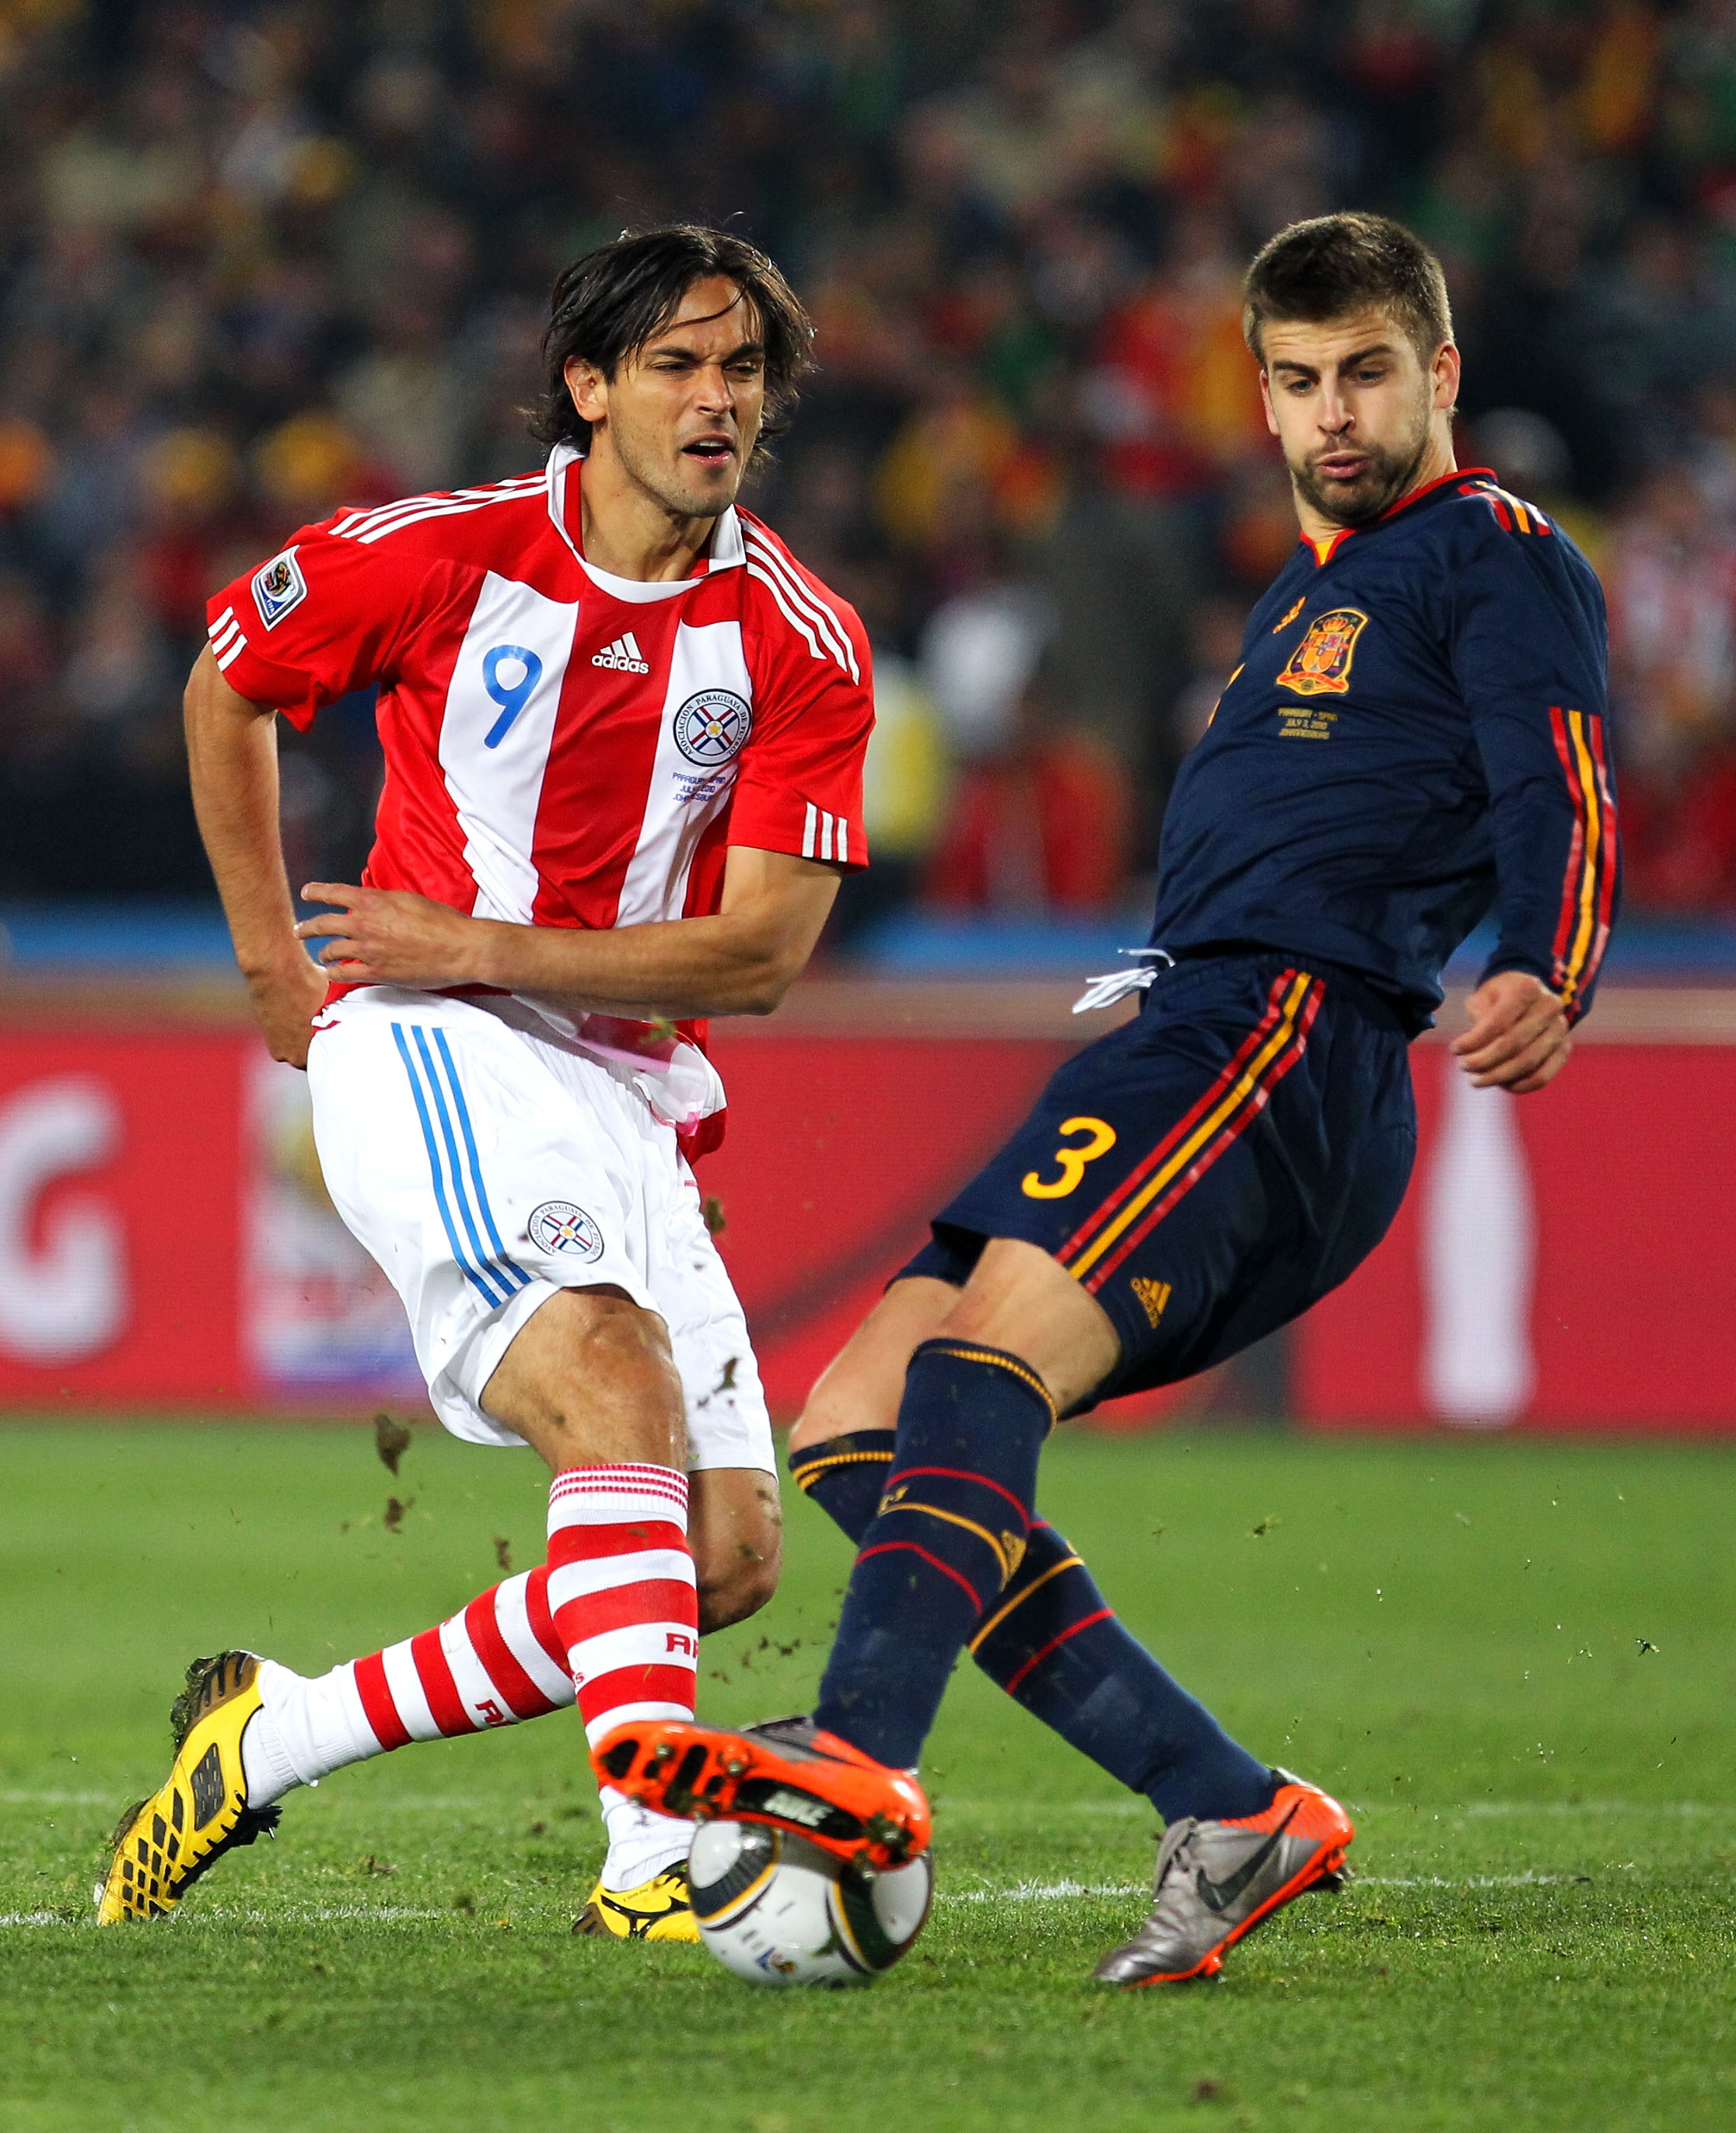 JOHANNESBURG, SOUTH AFRICA - JULY 03:  Gerard Pique of Spain tackles Roque Santa Cruz of Paraguay during the 2010 FIFA World Cup South Africa Quarter Final match between Paraguay and Spain at Ellis Park Stadium on July 3, 2010 in Johannesburg, South Afric